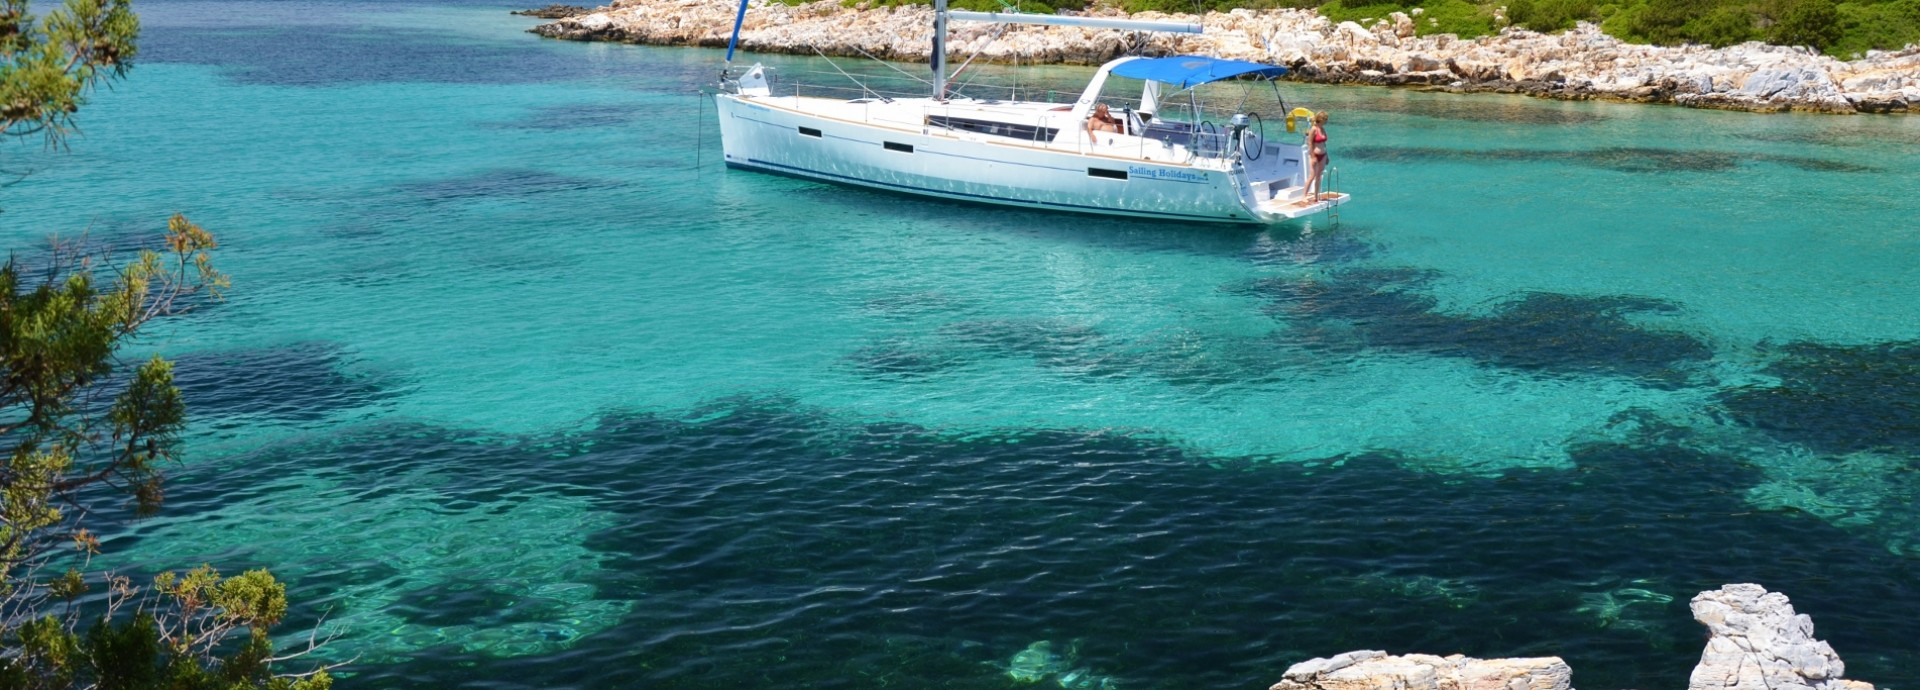 Beneteau 45 anchored in the Sporades